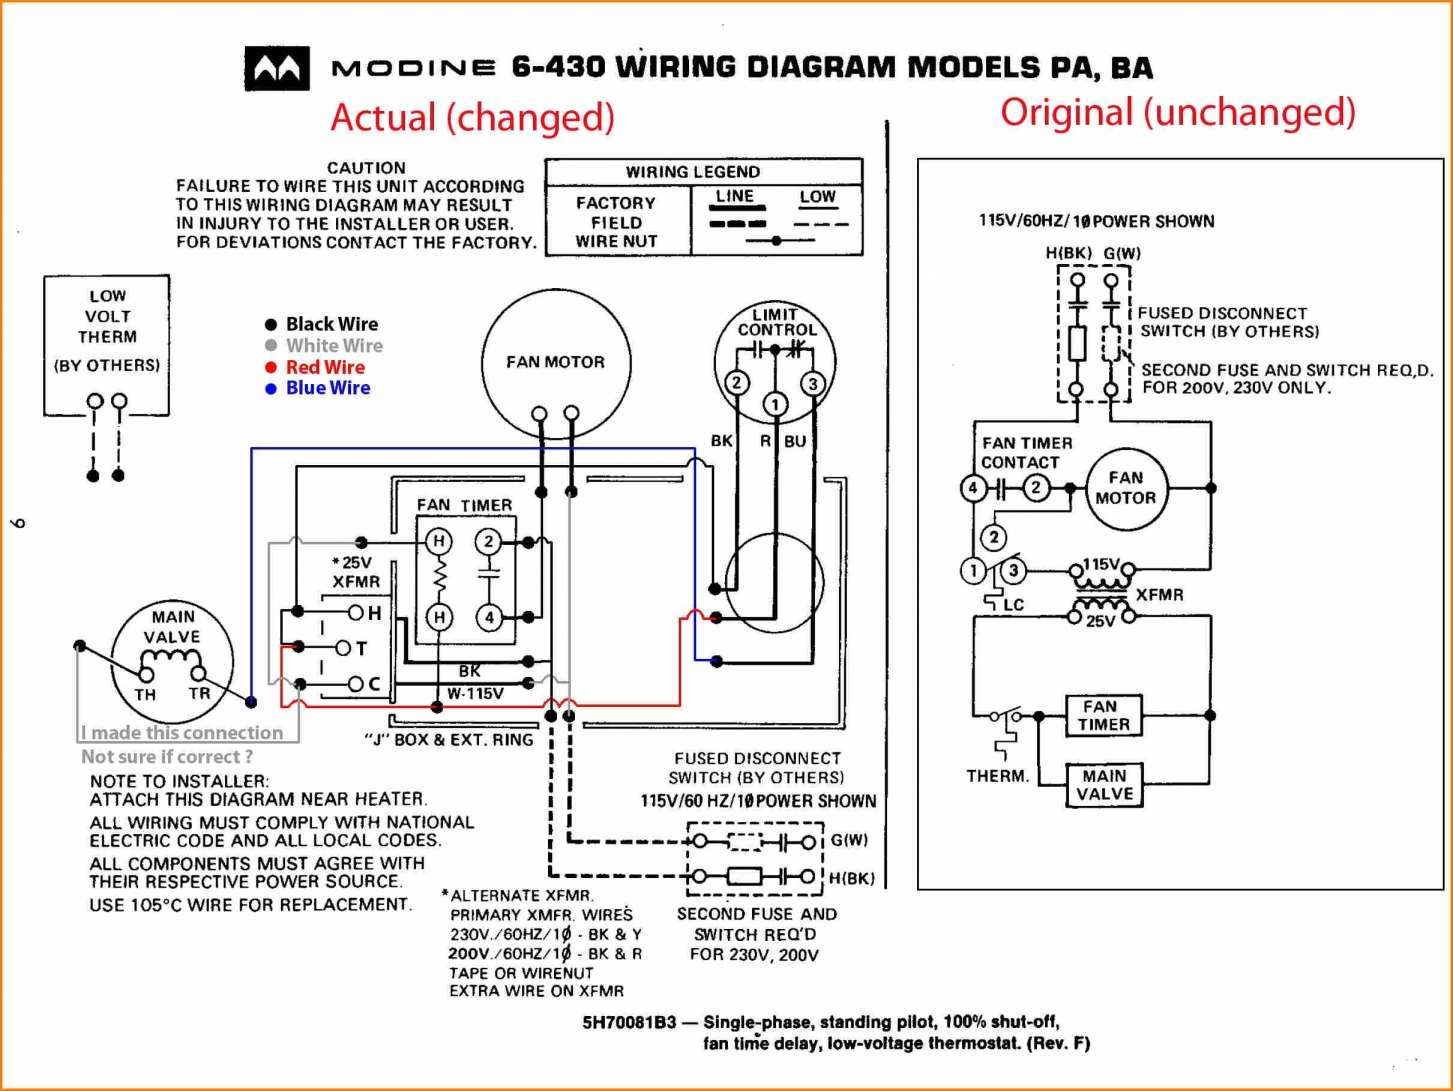 10 General Electric Ac Motor Wiring Diagram Wiring Diagram Wiringg Net In 2020 Electrical Wiring Diagram Thermostat Wiring Baseboard Heater